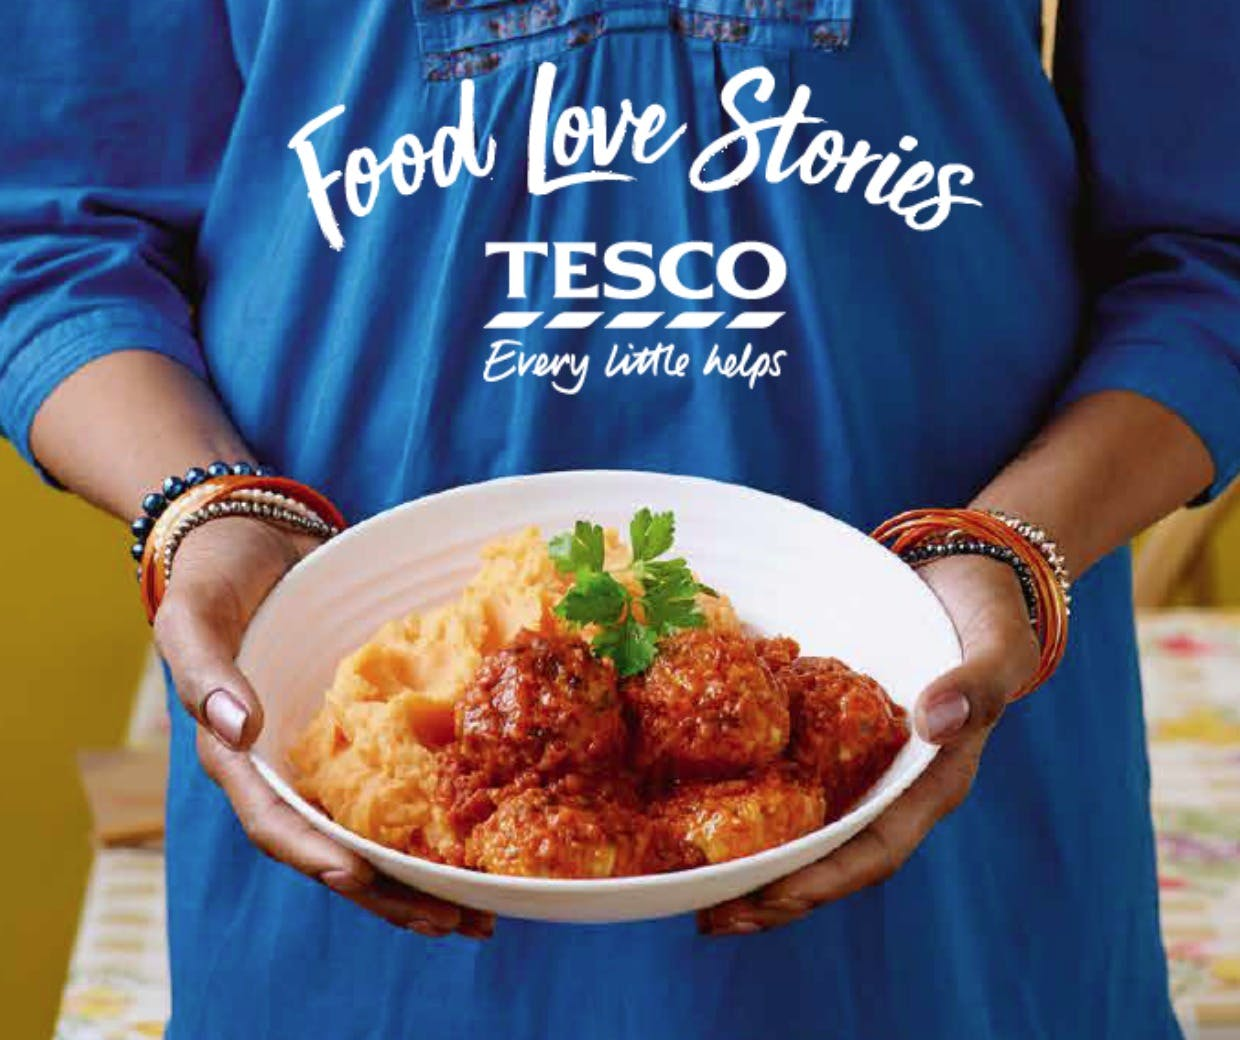 Tesco makes big change to how it talks about food in new ads forumfinder Image collections